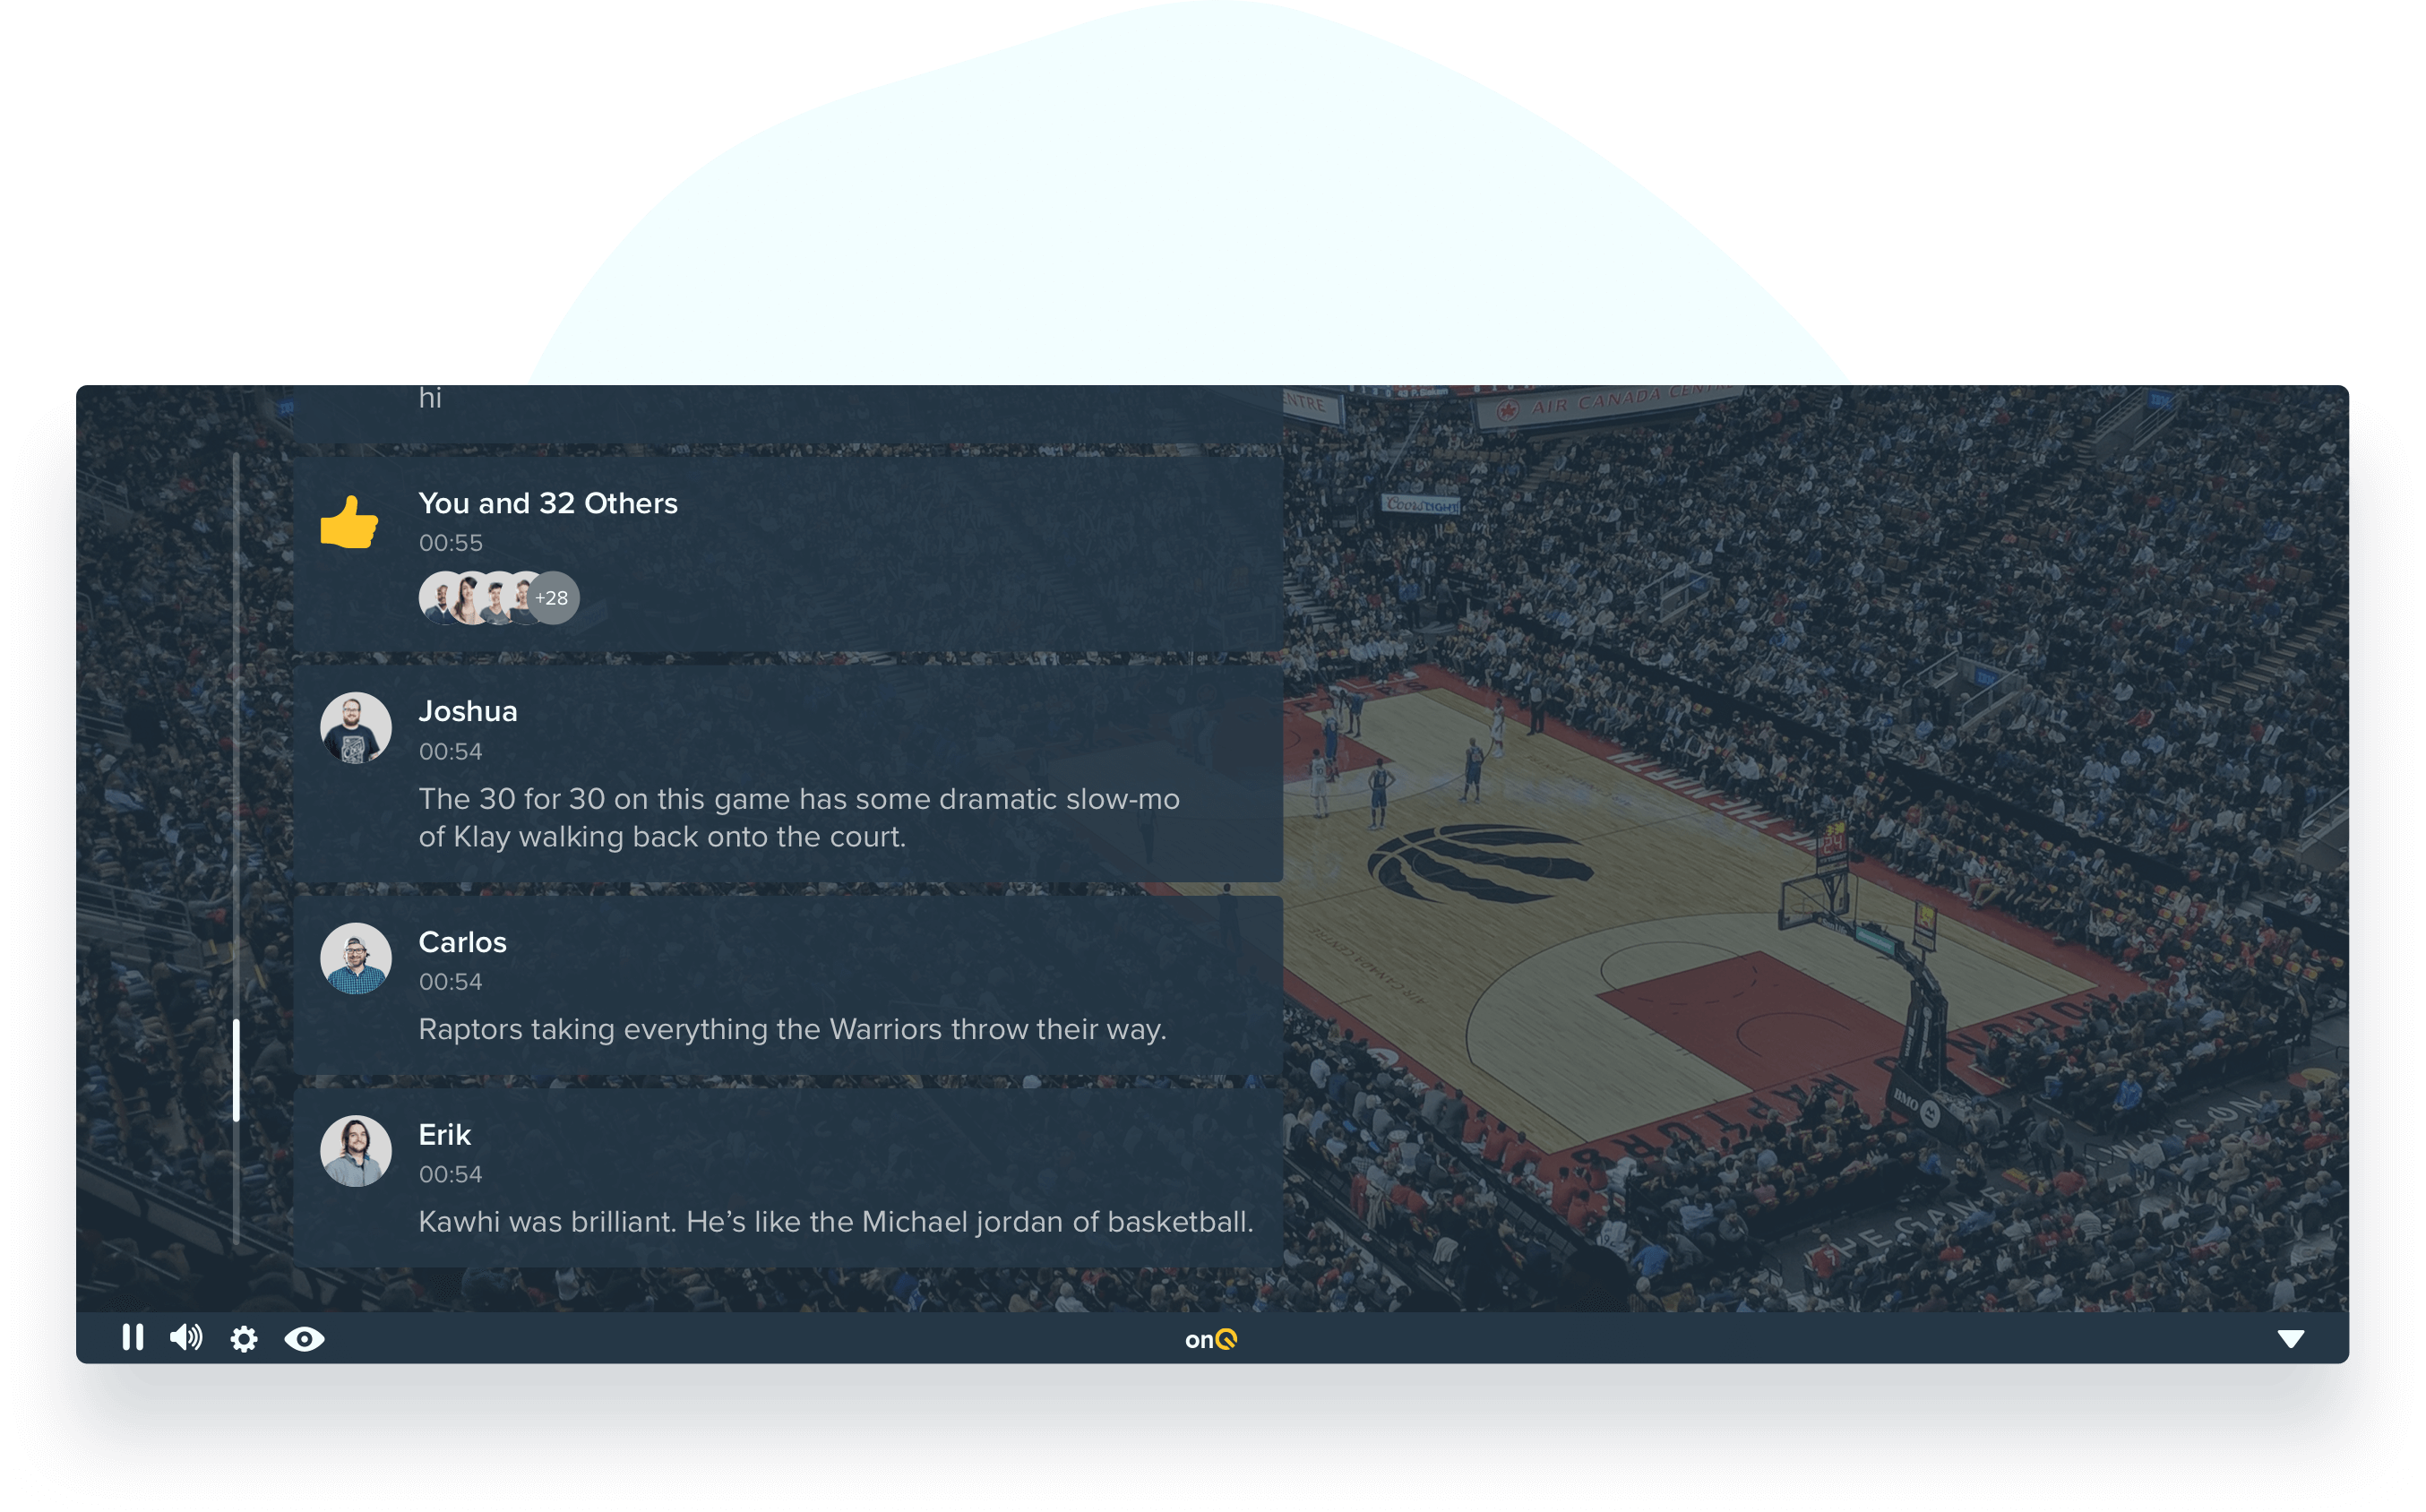 Mockup of the onQ's online hangout feature